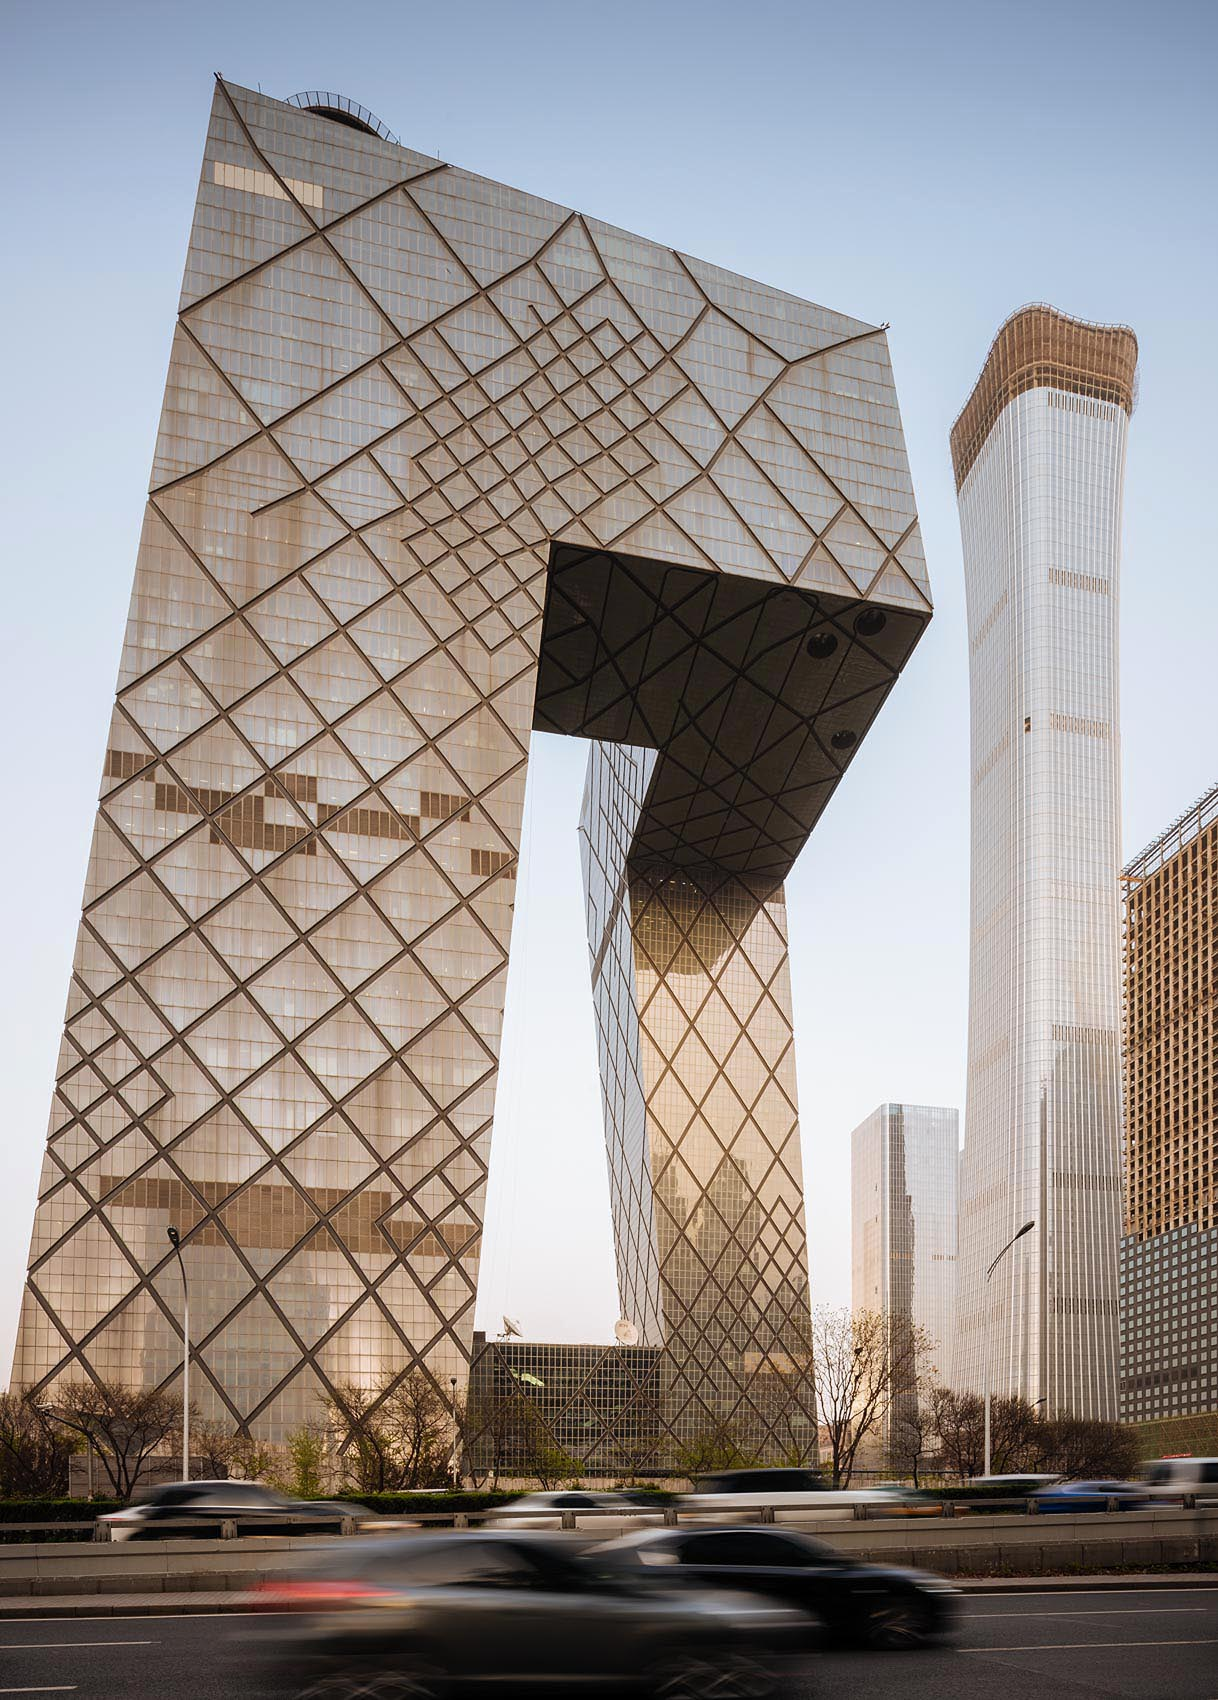 cctv-building-beijing-architecture-china-modern-skyscraper